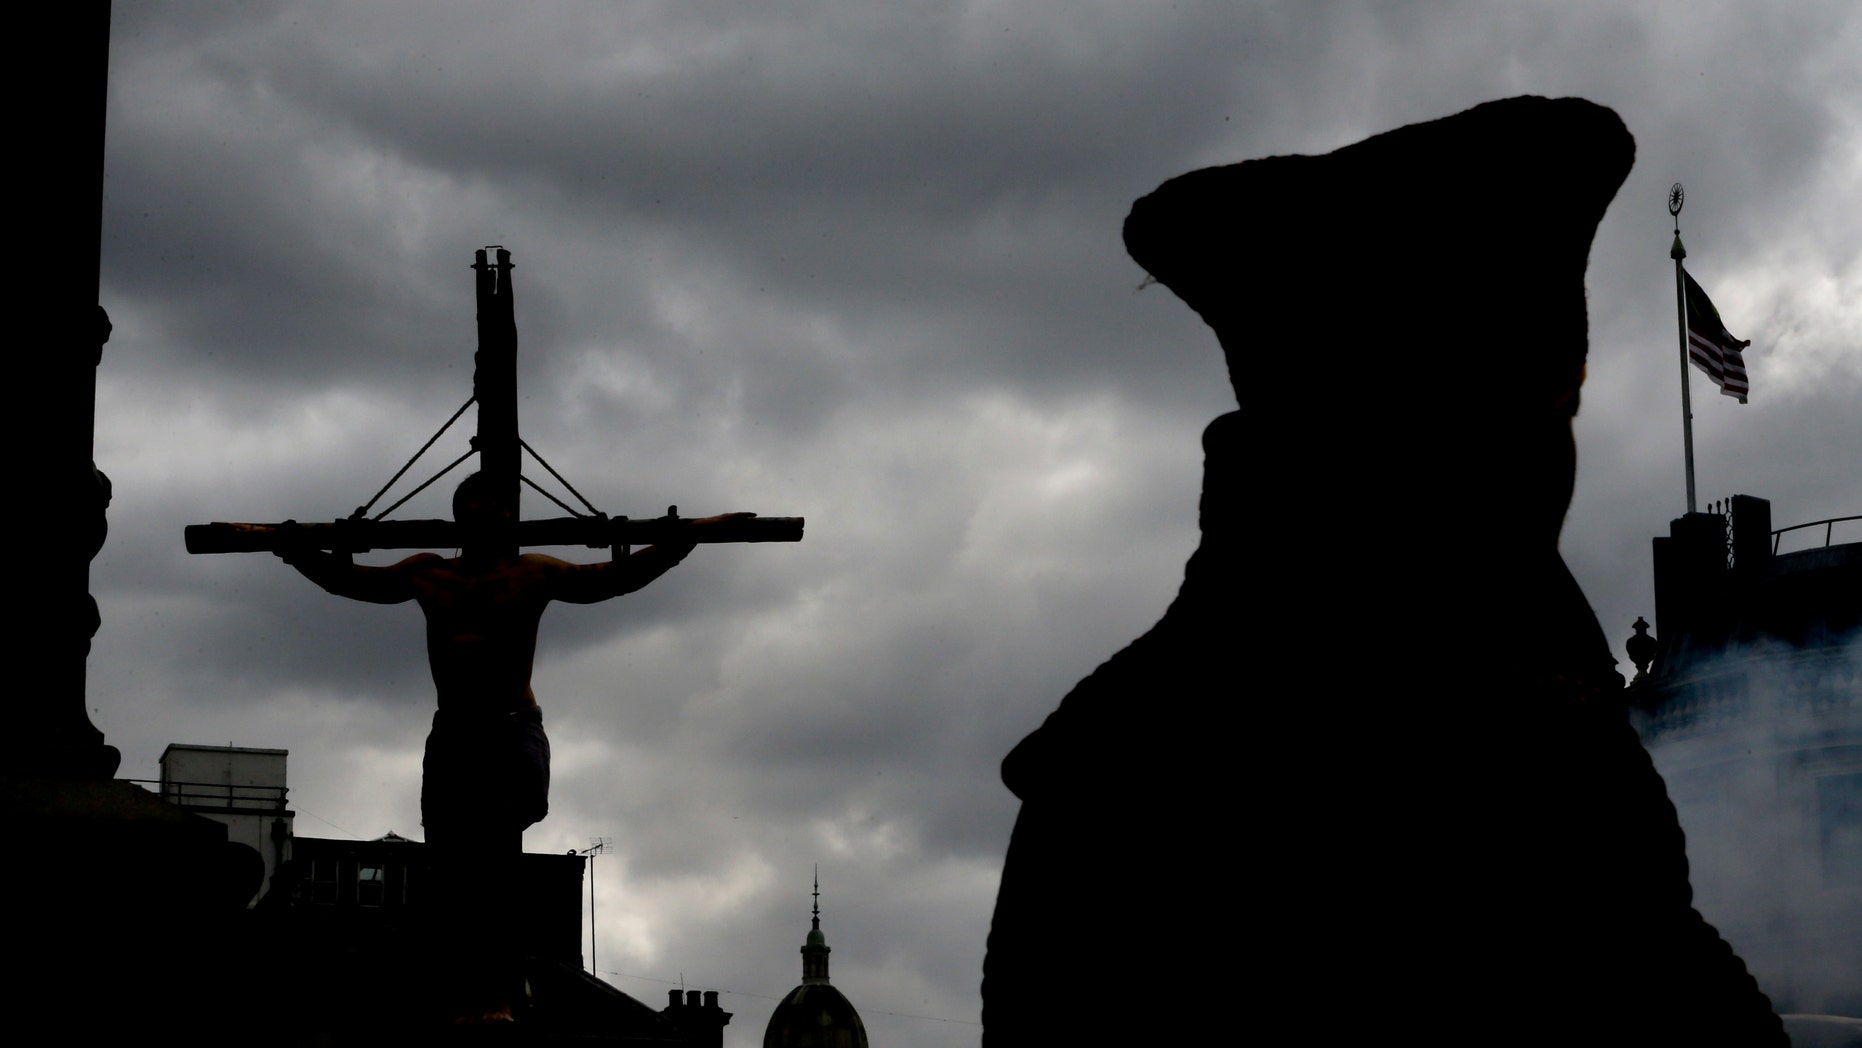 An actor is silhouetted hanging on a cross during a performance in Trafalgar Square in London, Friday, April 18, 2014. The play called 'The Passion of Jesus' was a free performance depicting the betrayal, capture, trial, crucifixion and resurrection of Jesus, performed by the Wintershall players. (AP Photo/Kirsty Wigglesworth)